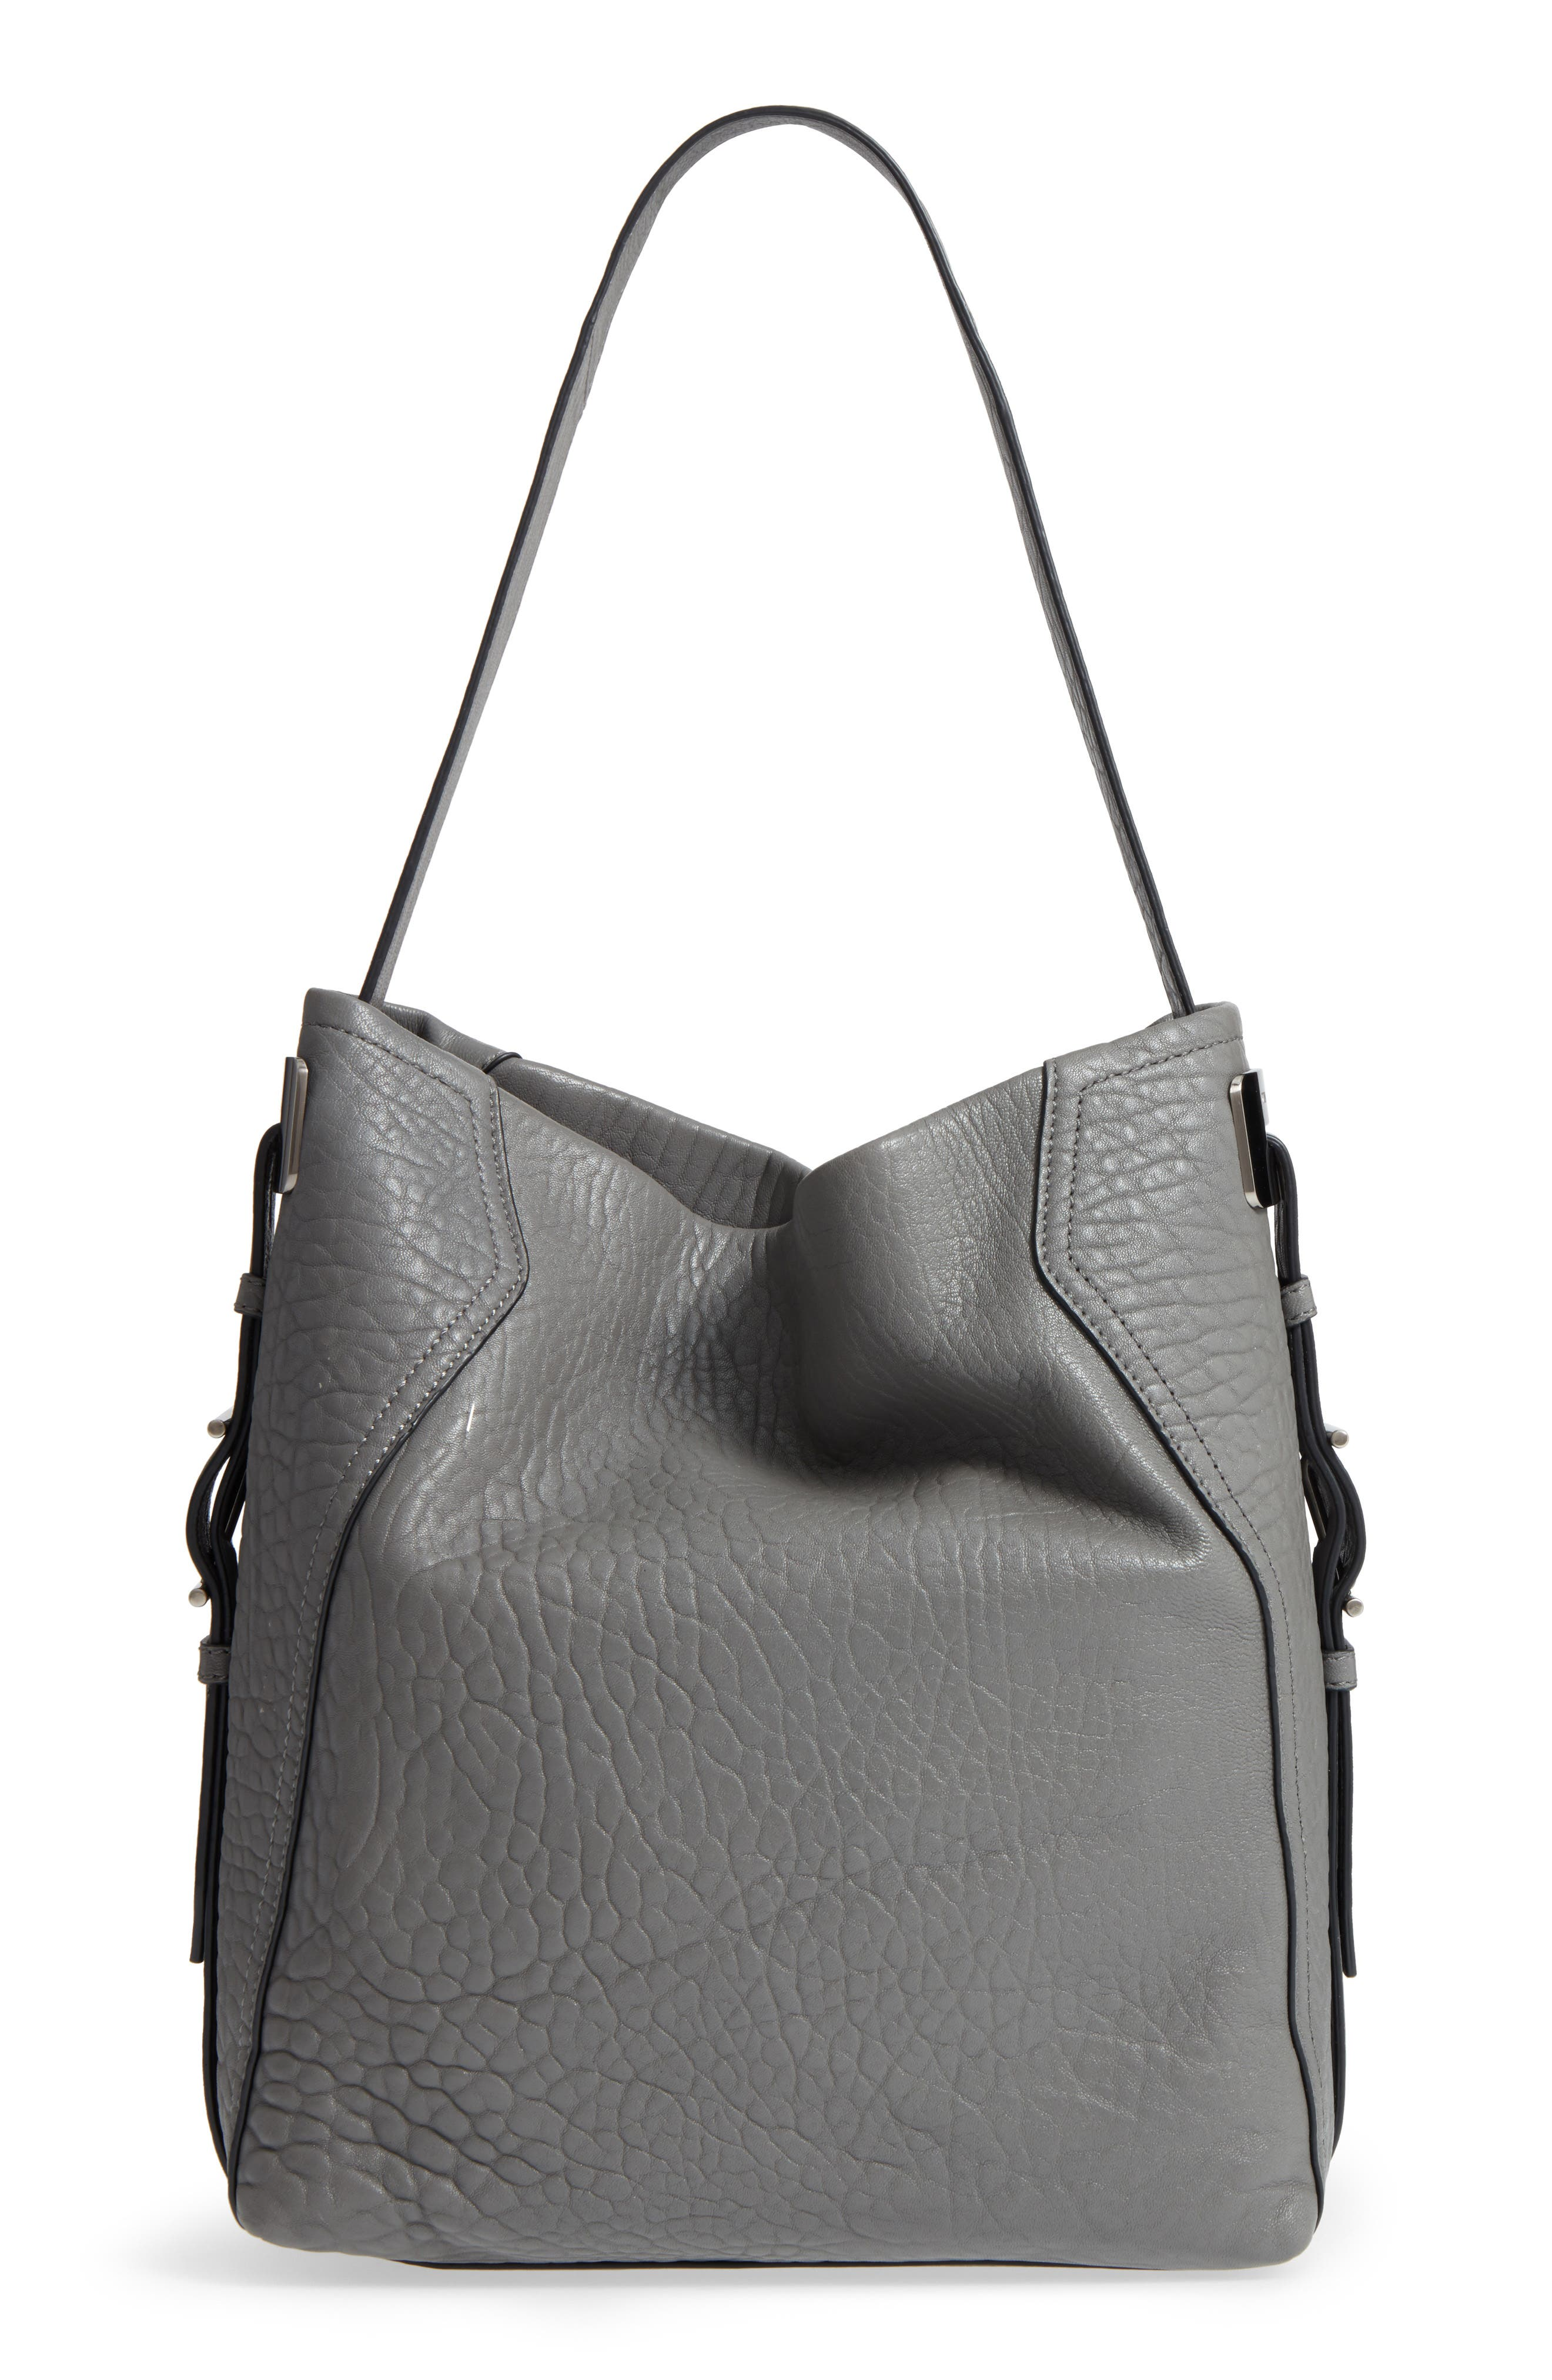 Vince Camuto Fava Leather Hobo